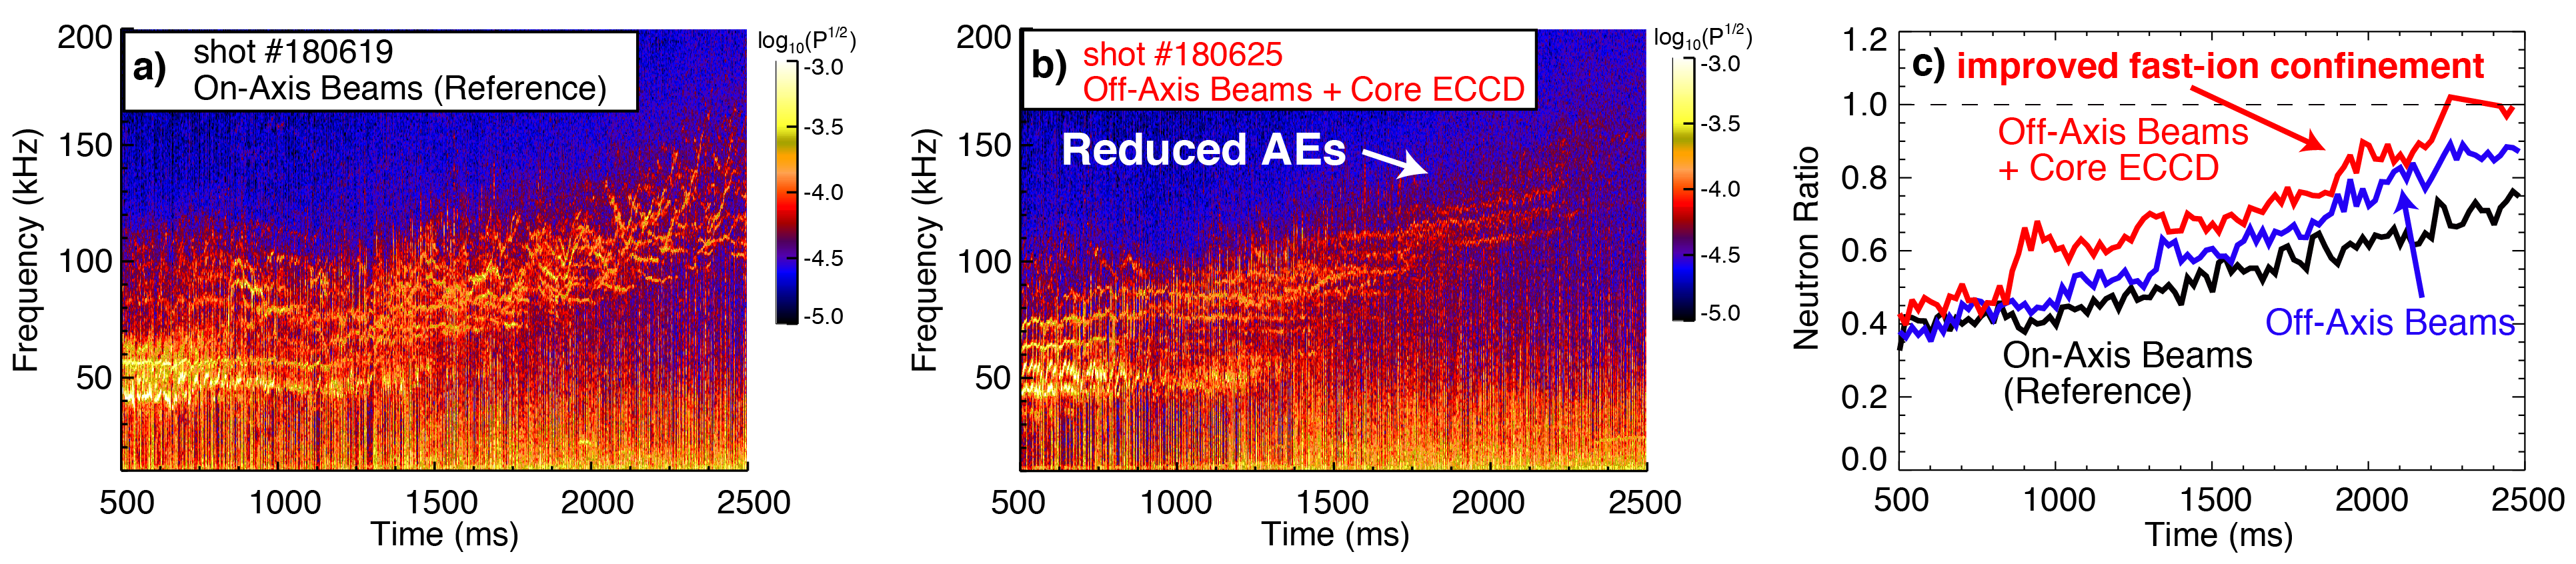 Comparison of density fluctuation measurements to (a) reference shows that (b) AEs are reduced during the current ramp using a broadened fast-ion pressure profile and ECCD current profile control, corresponding to (c) an increase in the neutron ratio, a proxy for fast-ion confinement.